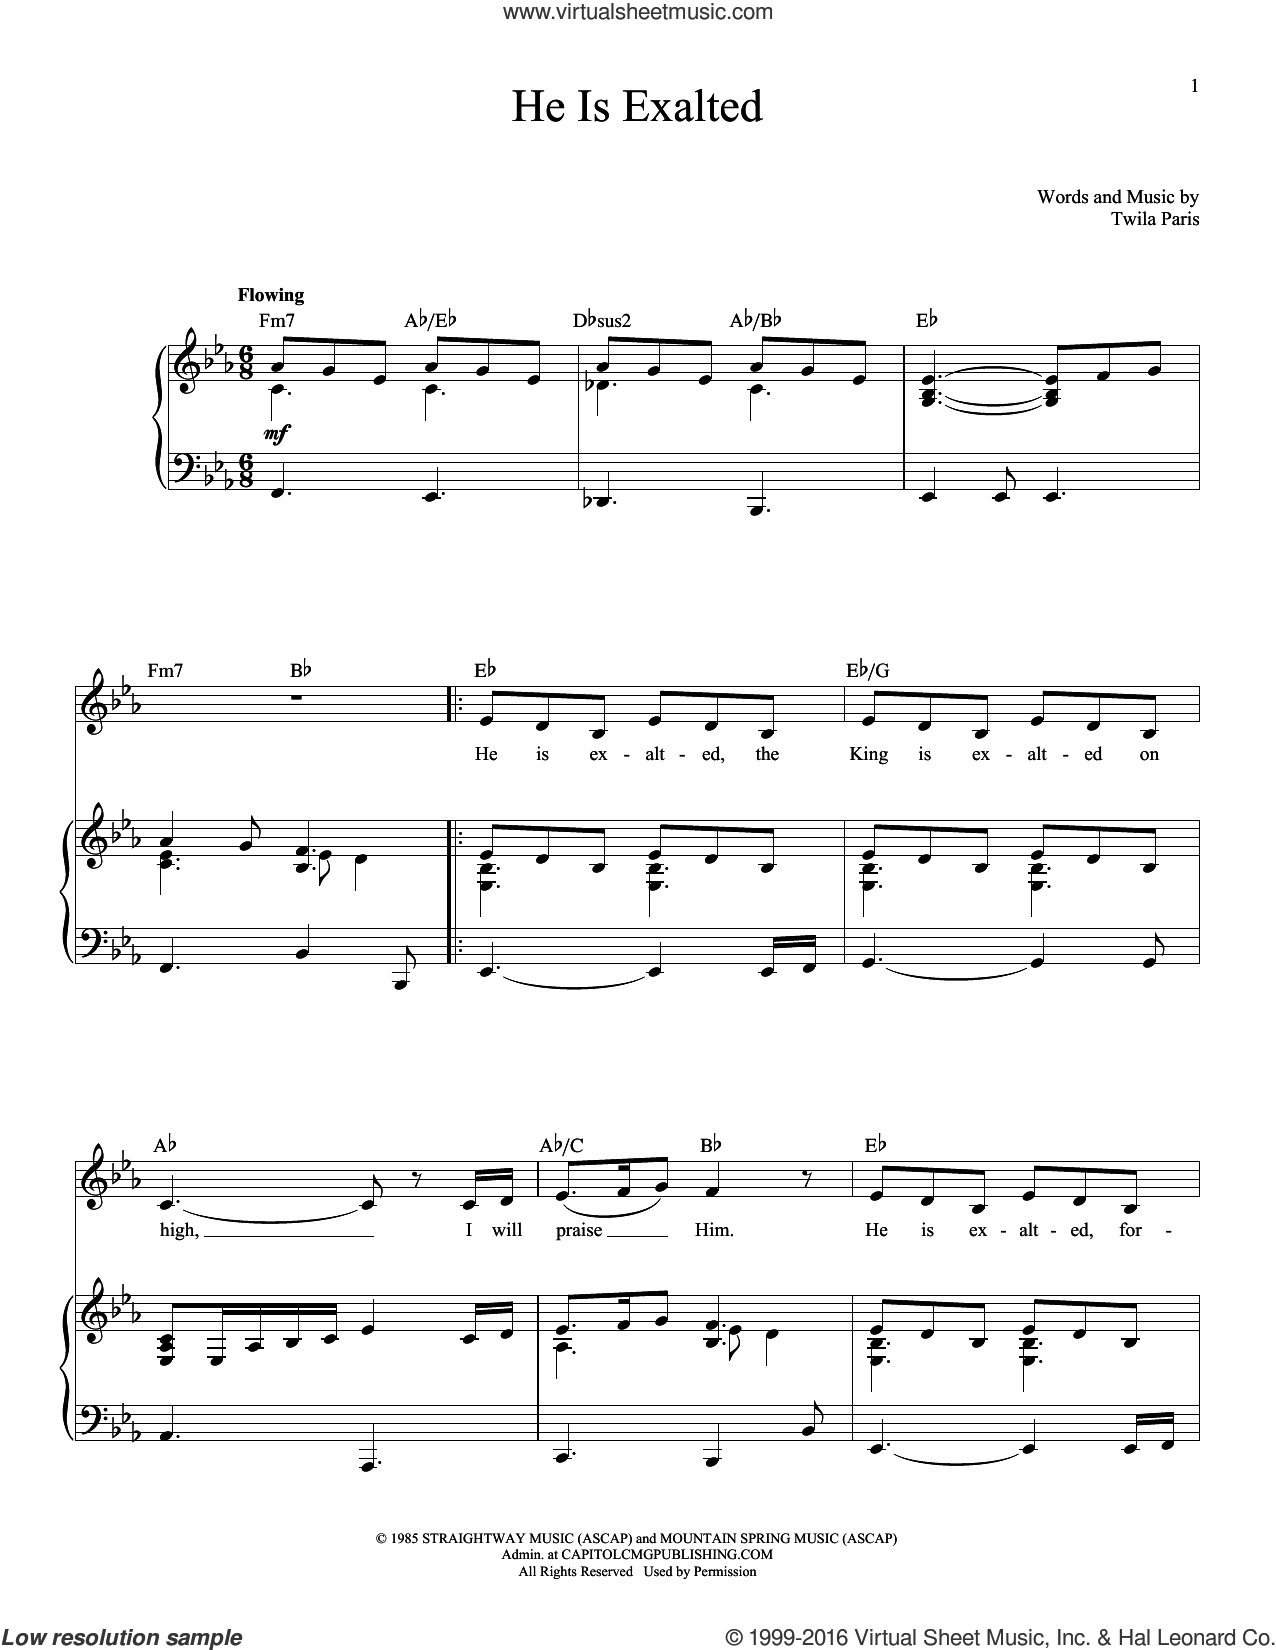 He Is Exalted sheet music for voice and piano by Twila Paris. Score Image Preview.